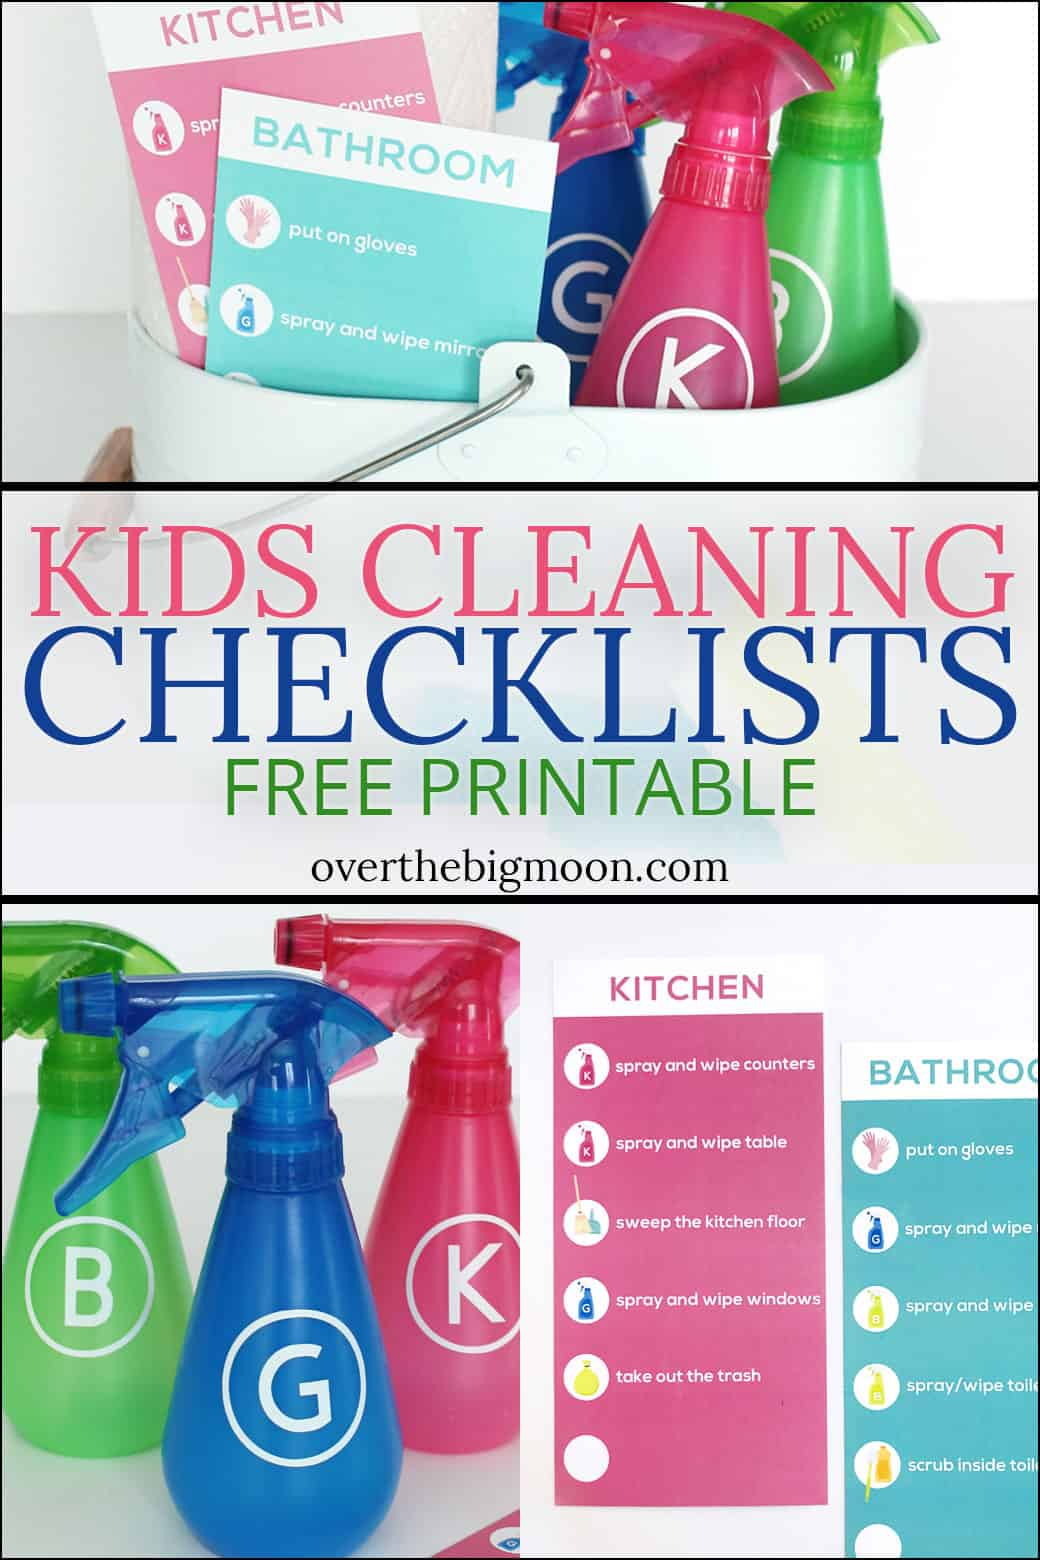 Kids Cleaning Checklists Free Printable - perfect way to get your kiddos helping around the house! From overthebigmoon.com!